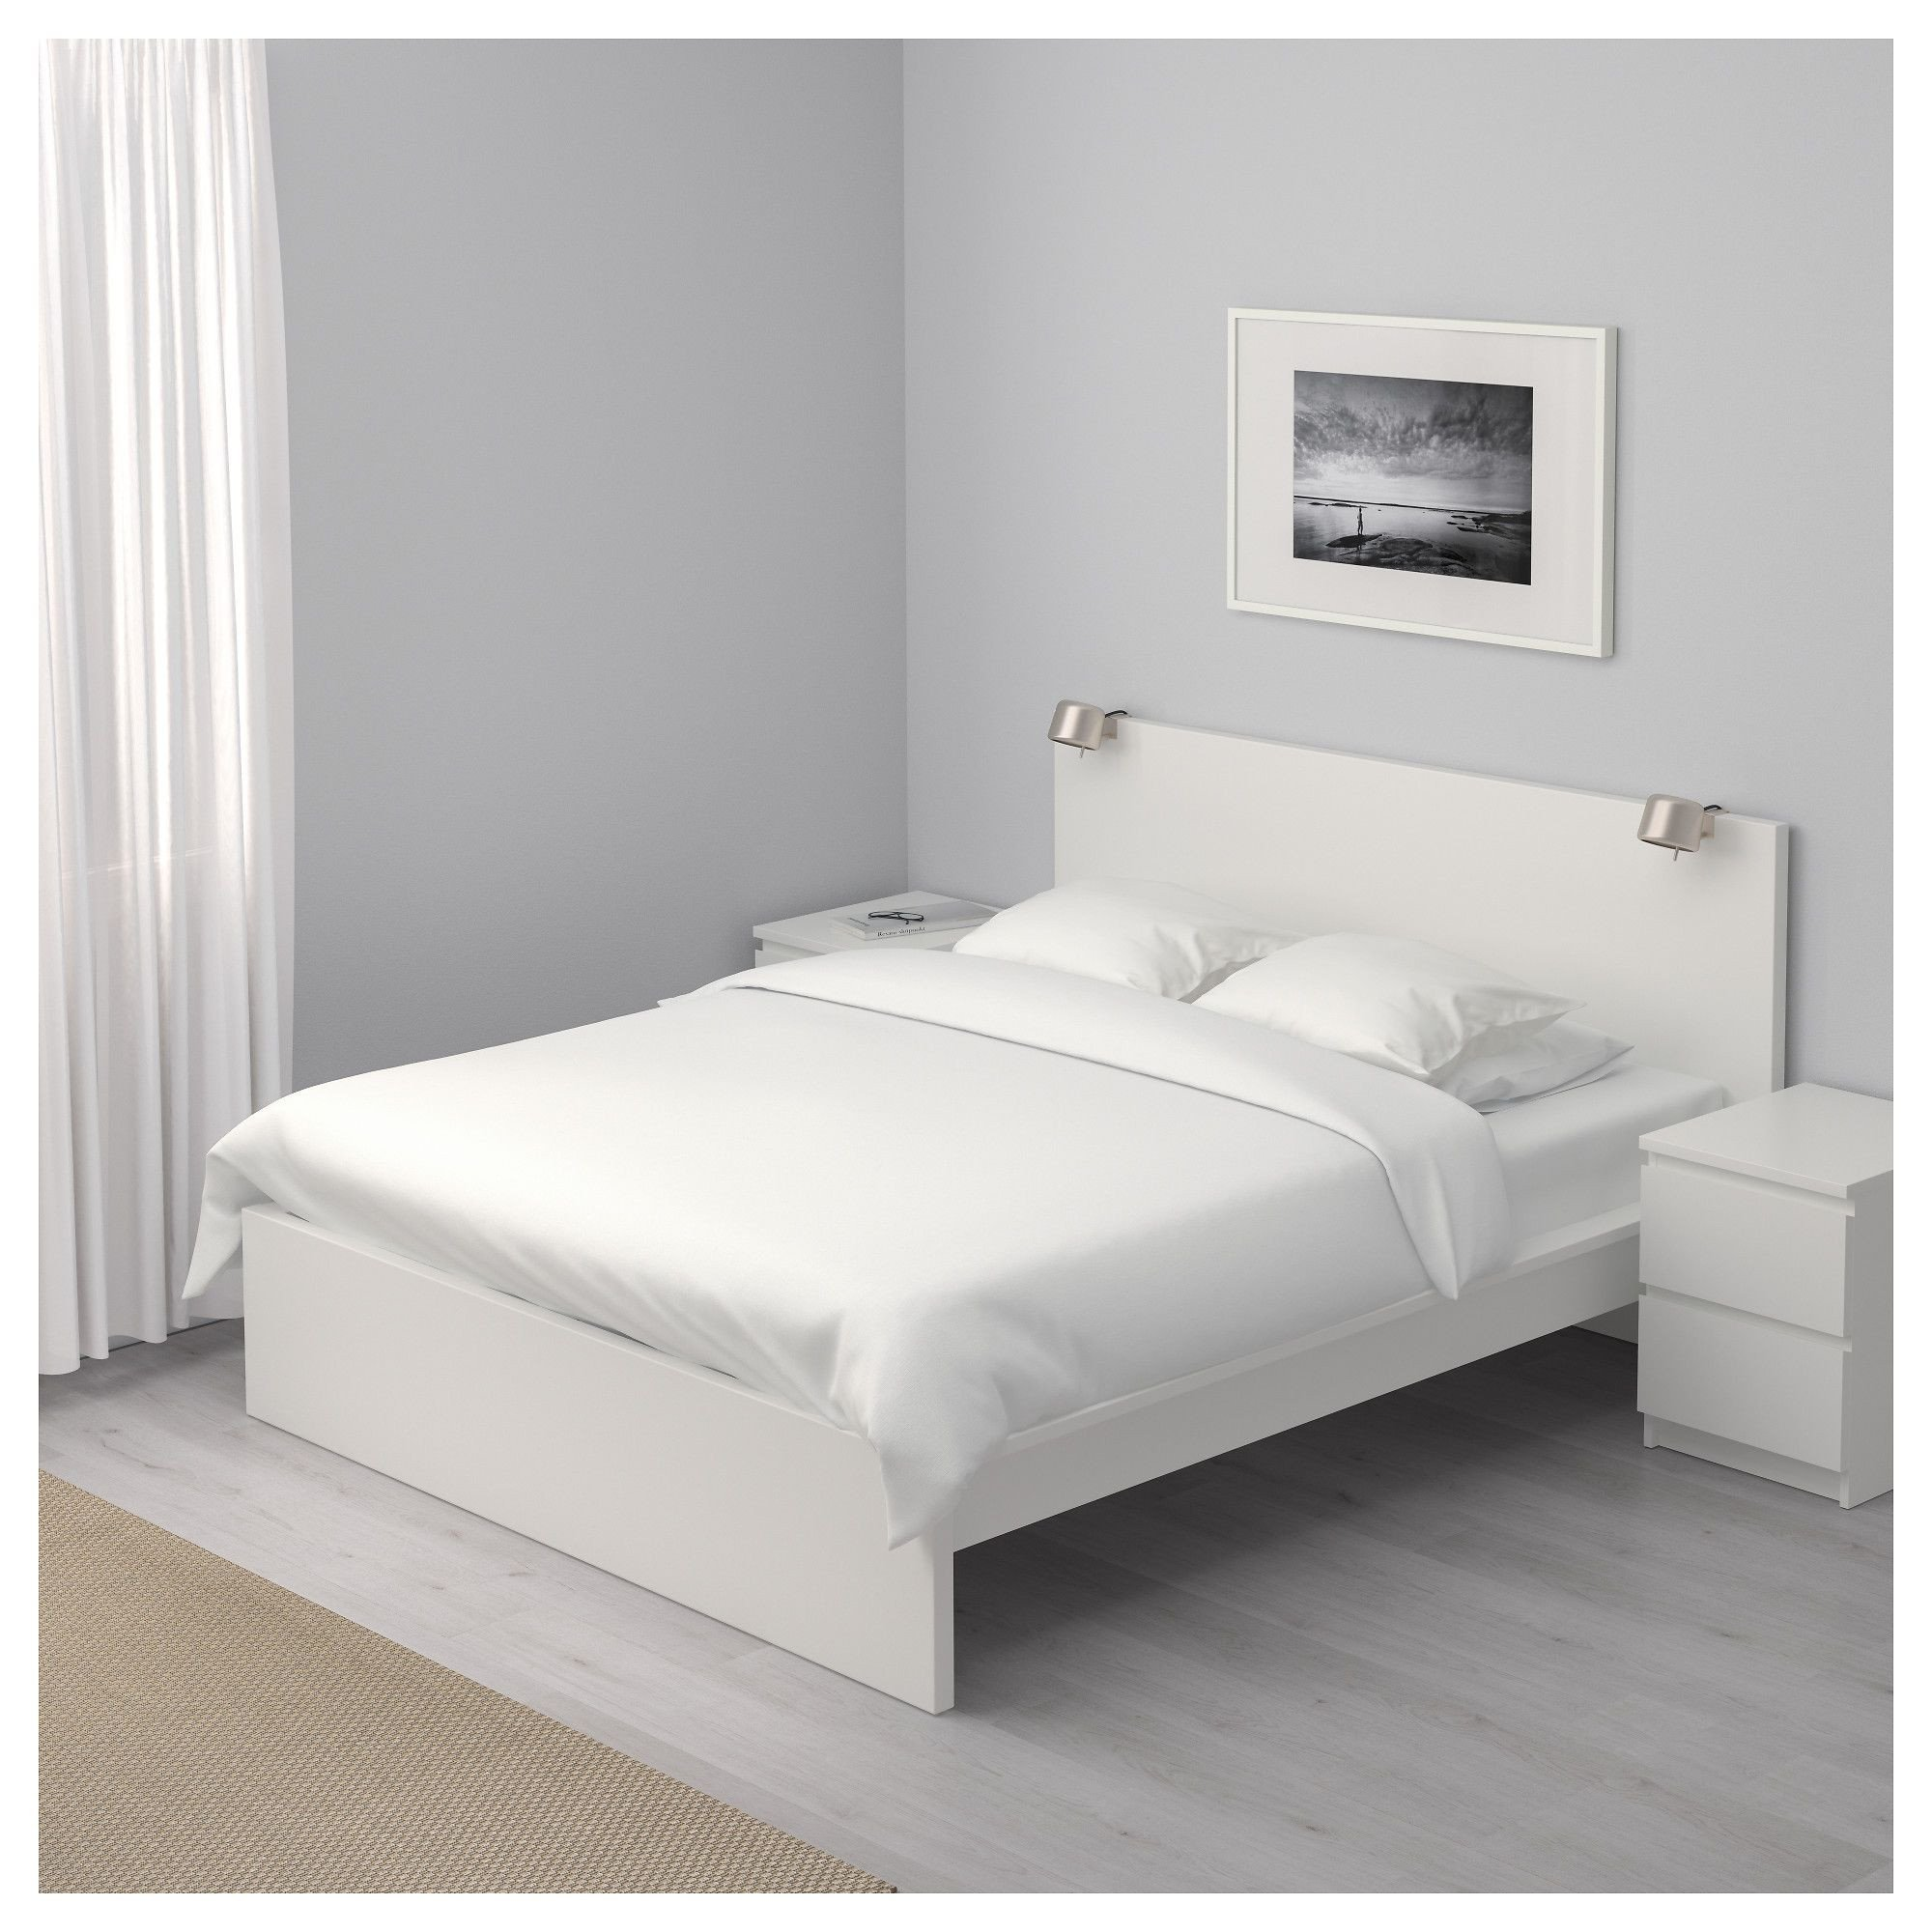 Ikea Bedroom Set Queen Awesome Ikea Malm White Luröy Bed Frame High